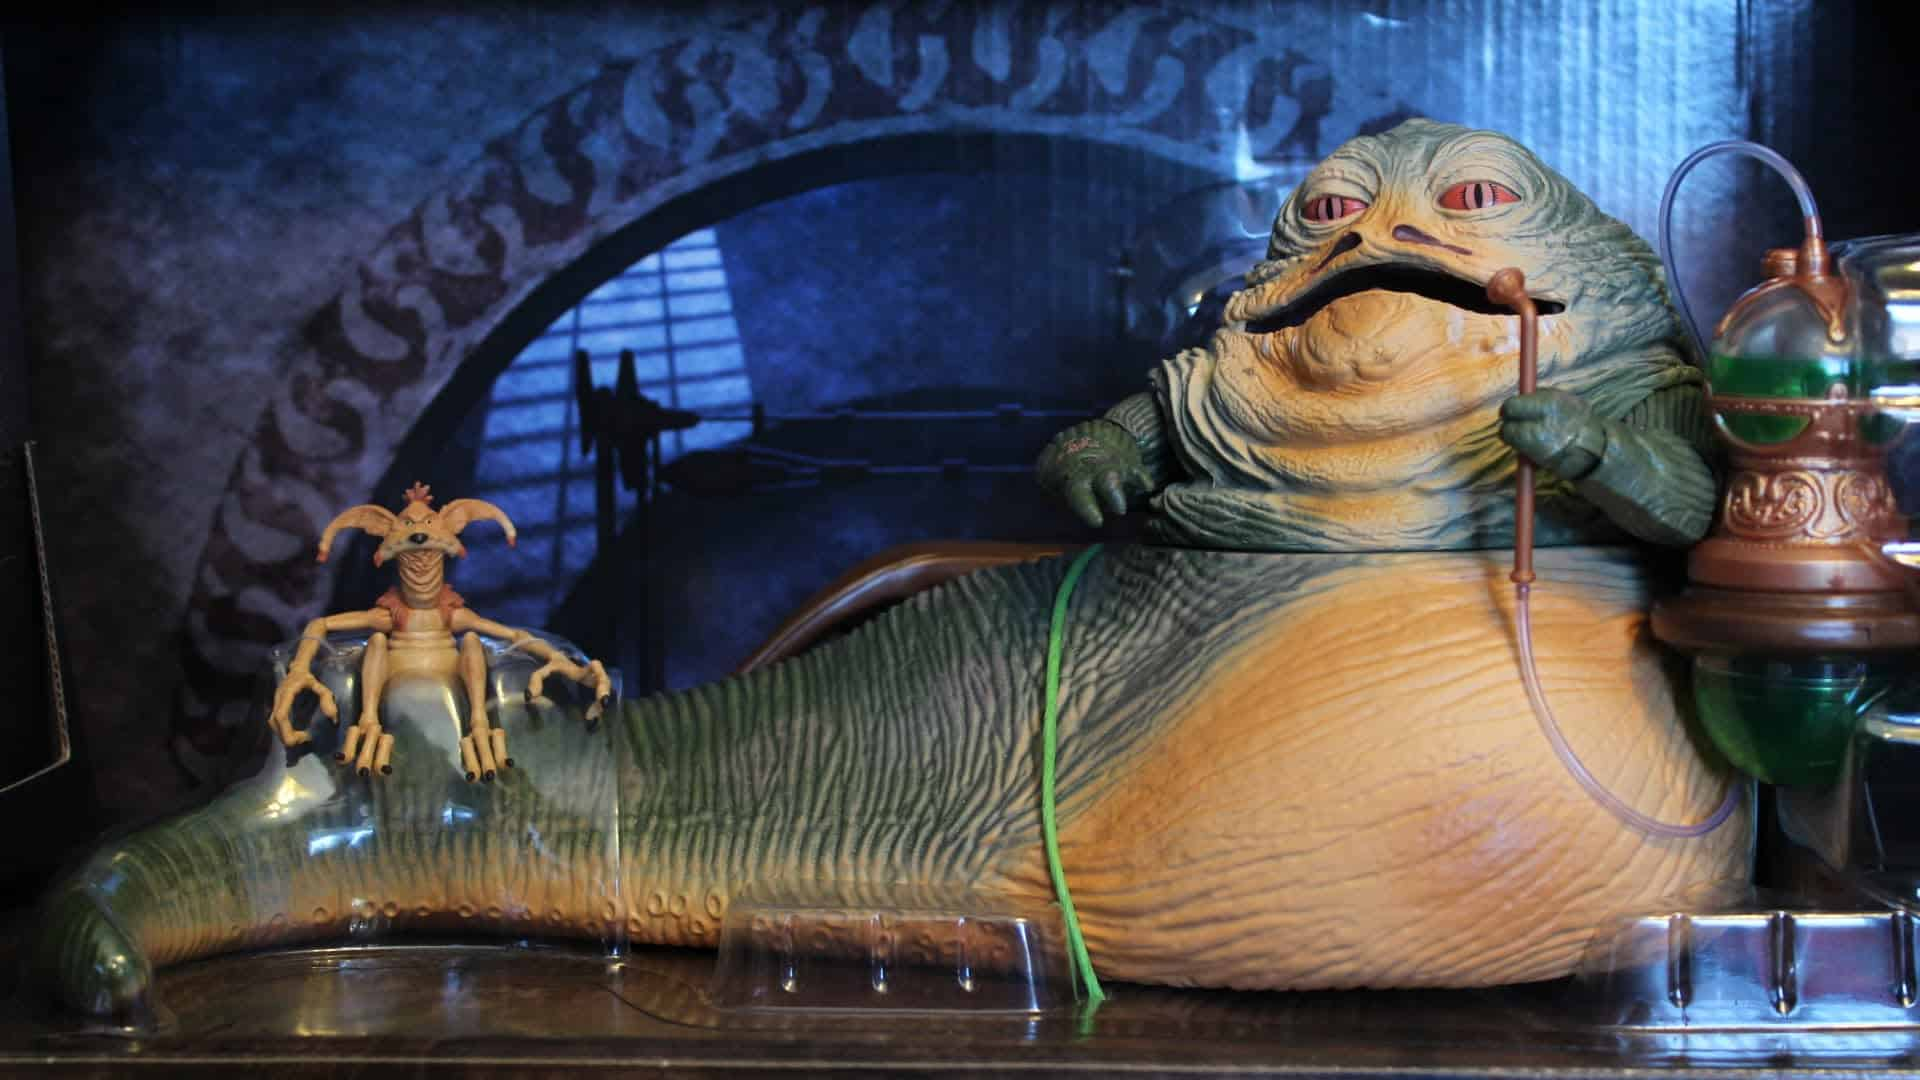 Democracy v Delegates - The Musings of the Big Red Car Jabba The Hutt